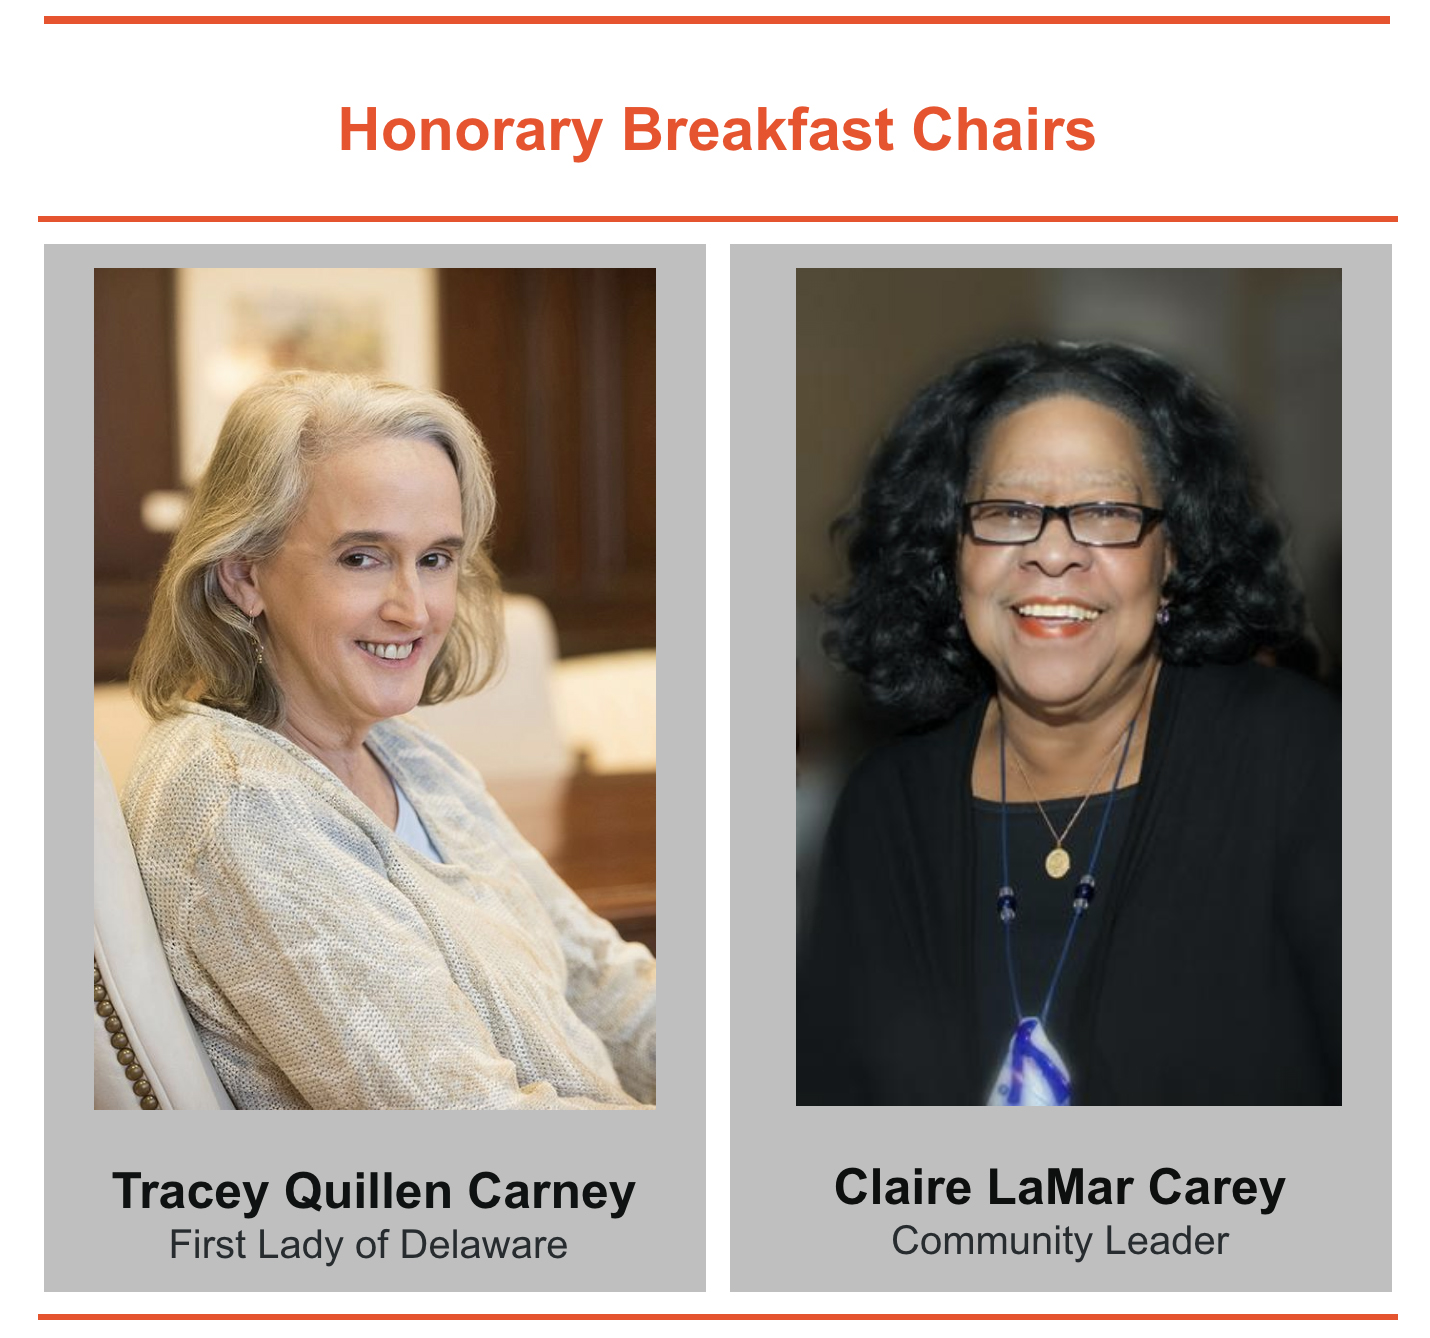 Tracey Quillen Carney, First Lady of Delaware & Claire LaMar Carey Community Leader